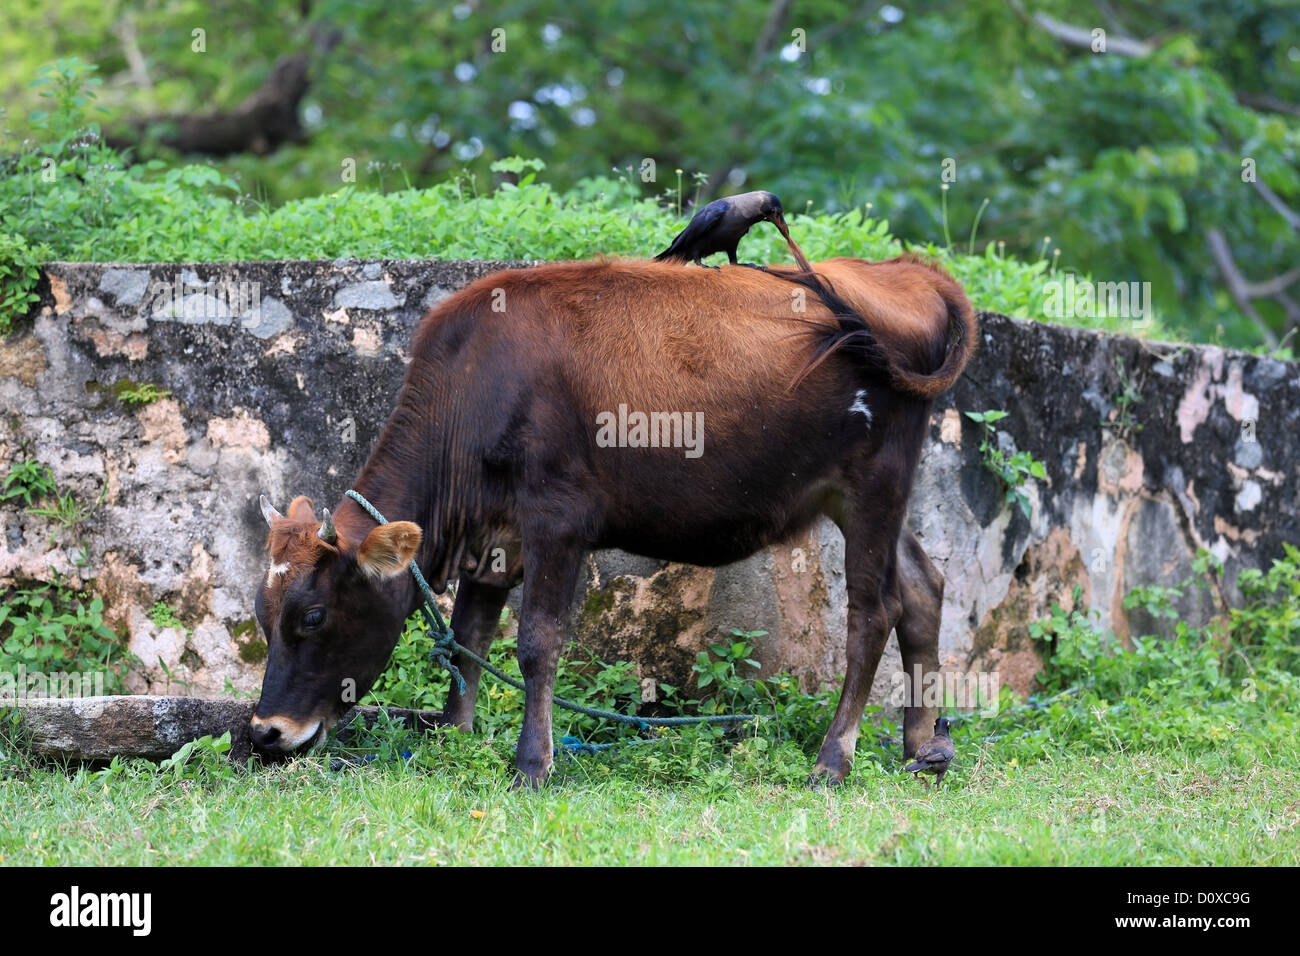 A crow pulls on the tail of a cow in Galle Fort, Sri Lanka. Stock Photo